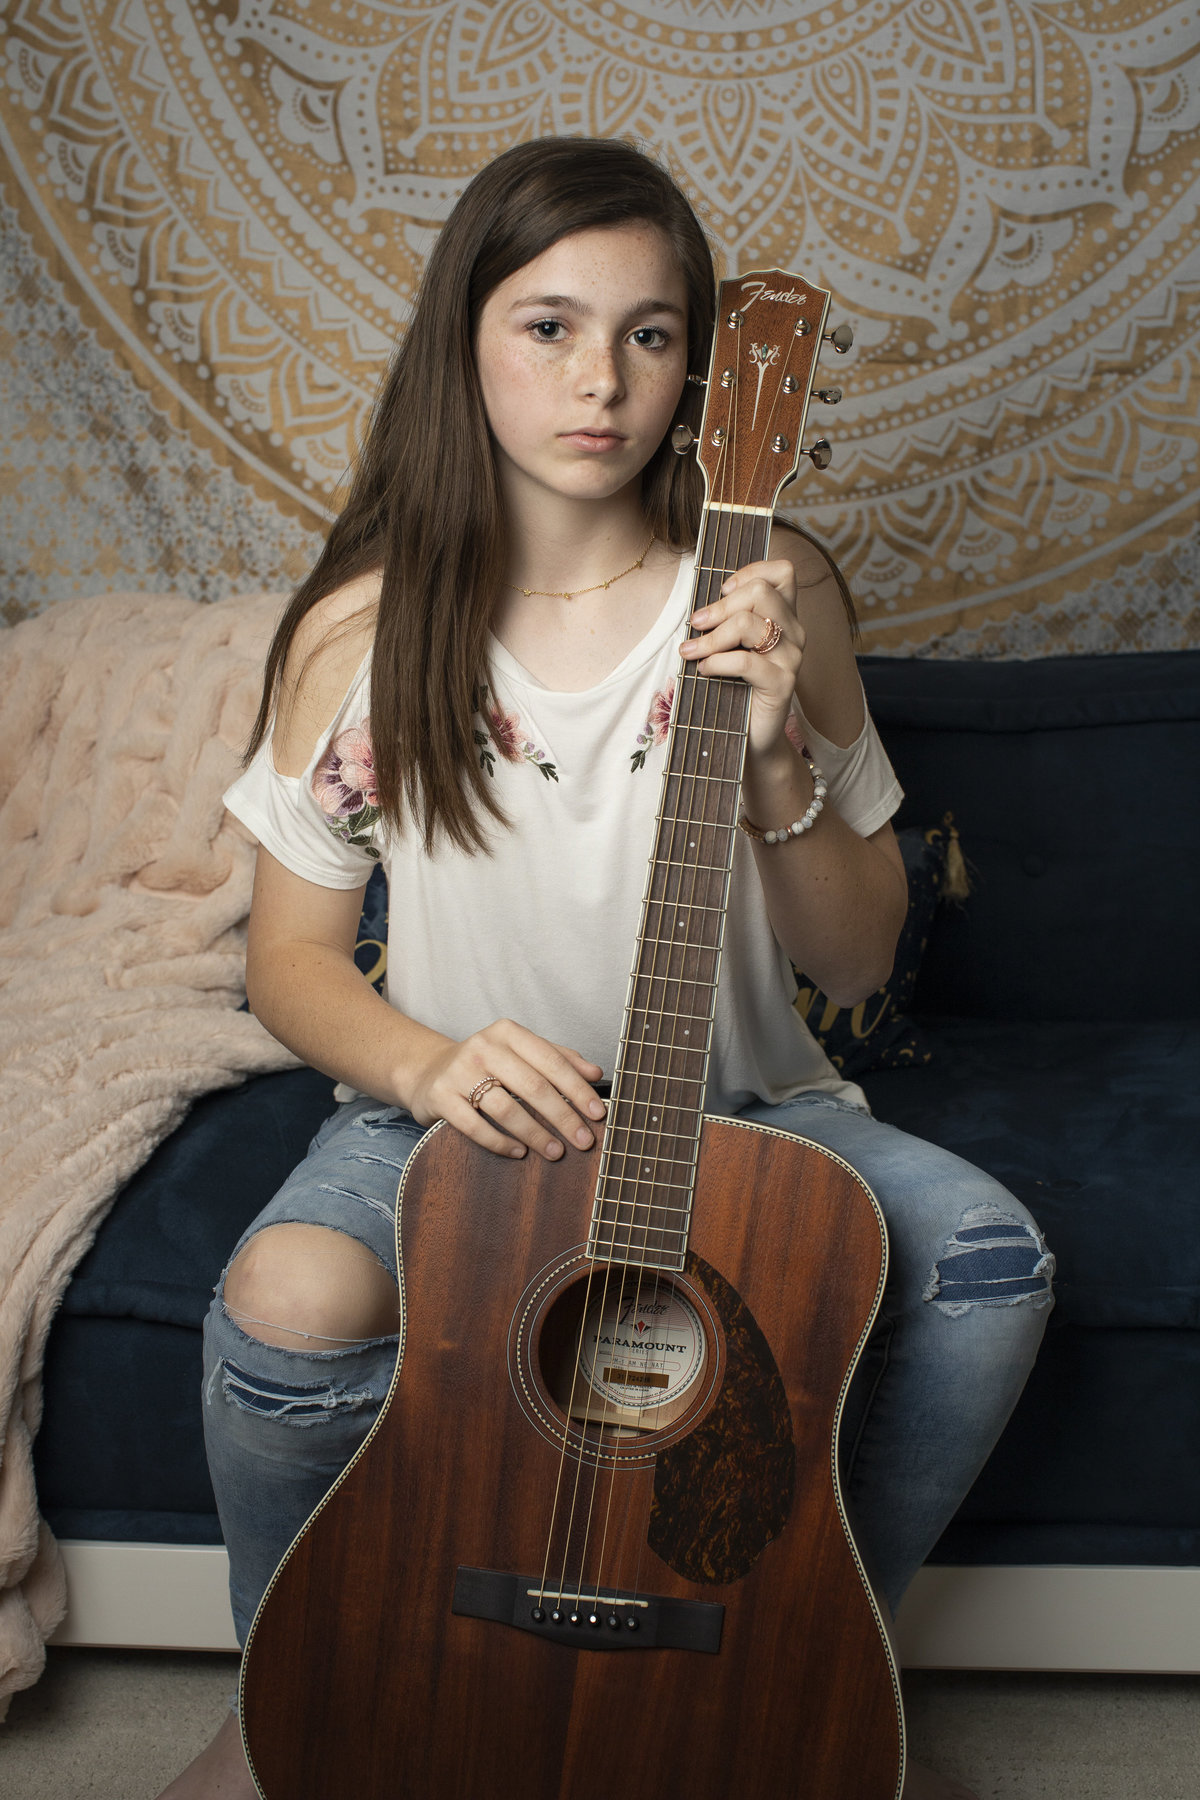 teen_photographer_perry_georgia_jlfarmer_guitar3